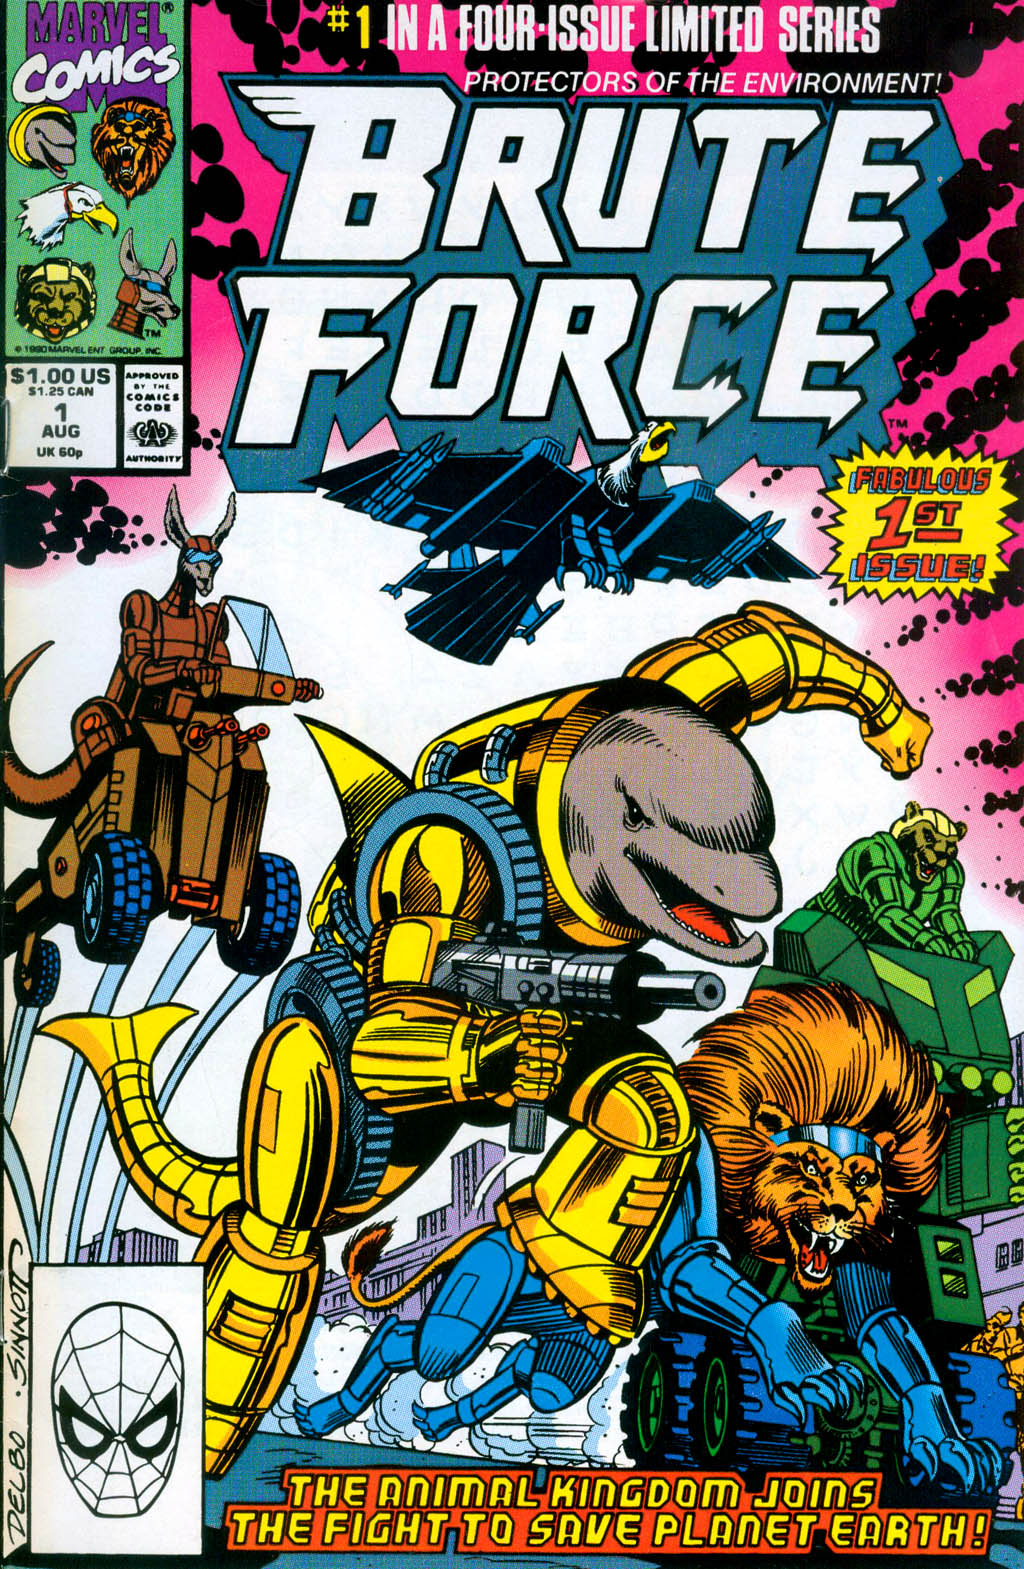 Brute Force (1990) #1, cover penciled by Jose Delbo & inked by Joe Sinnott.